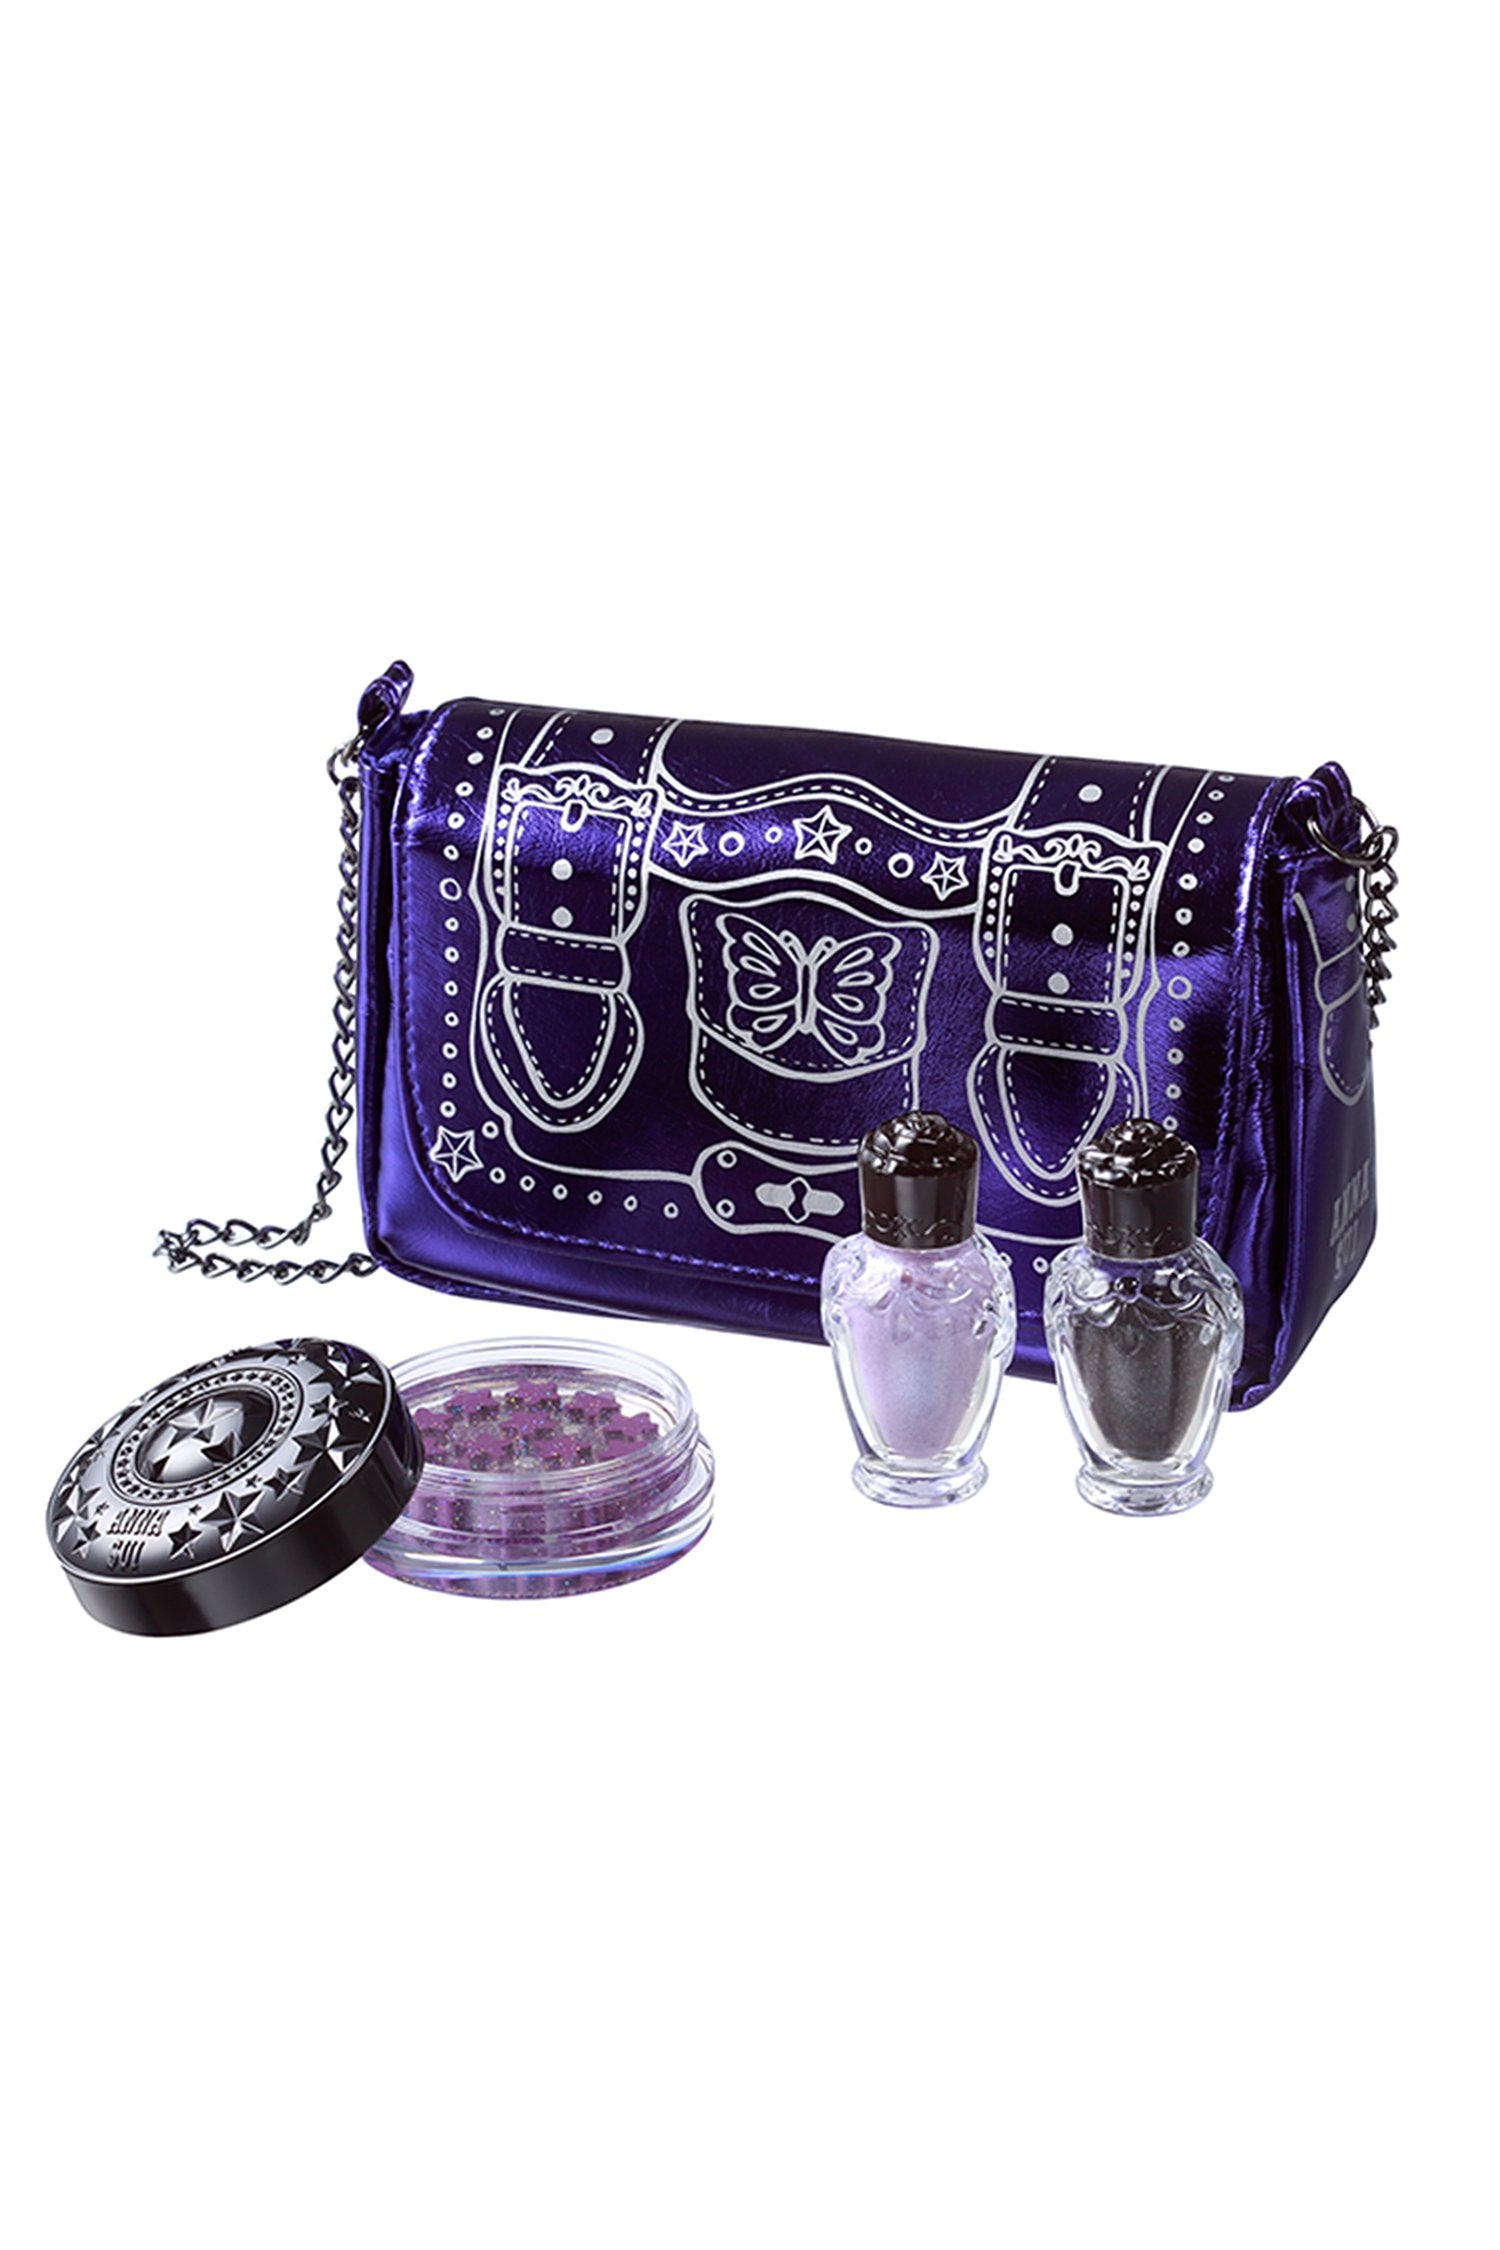 New: Stardust Makeup Pouch Set